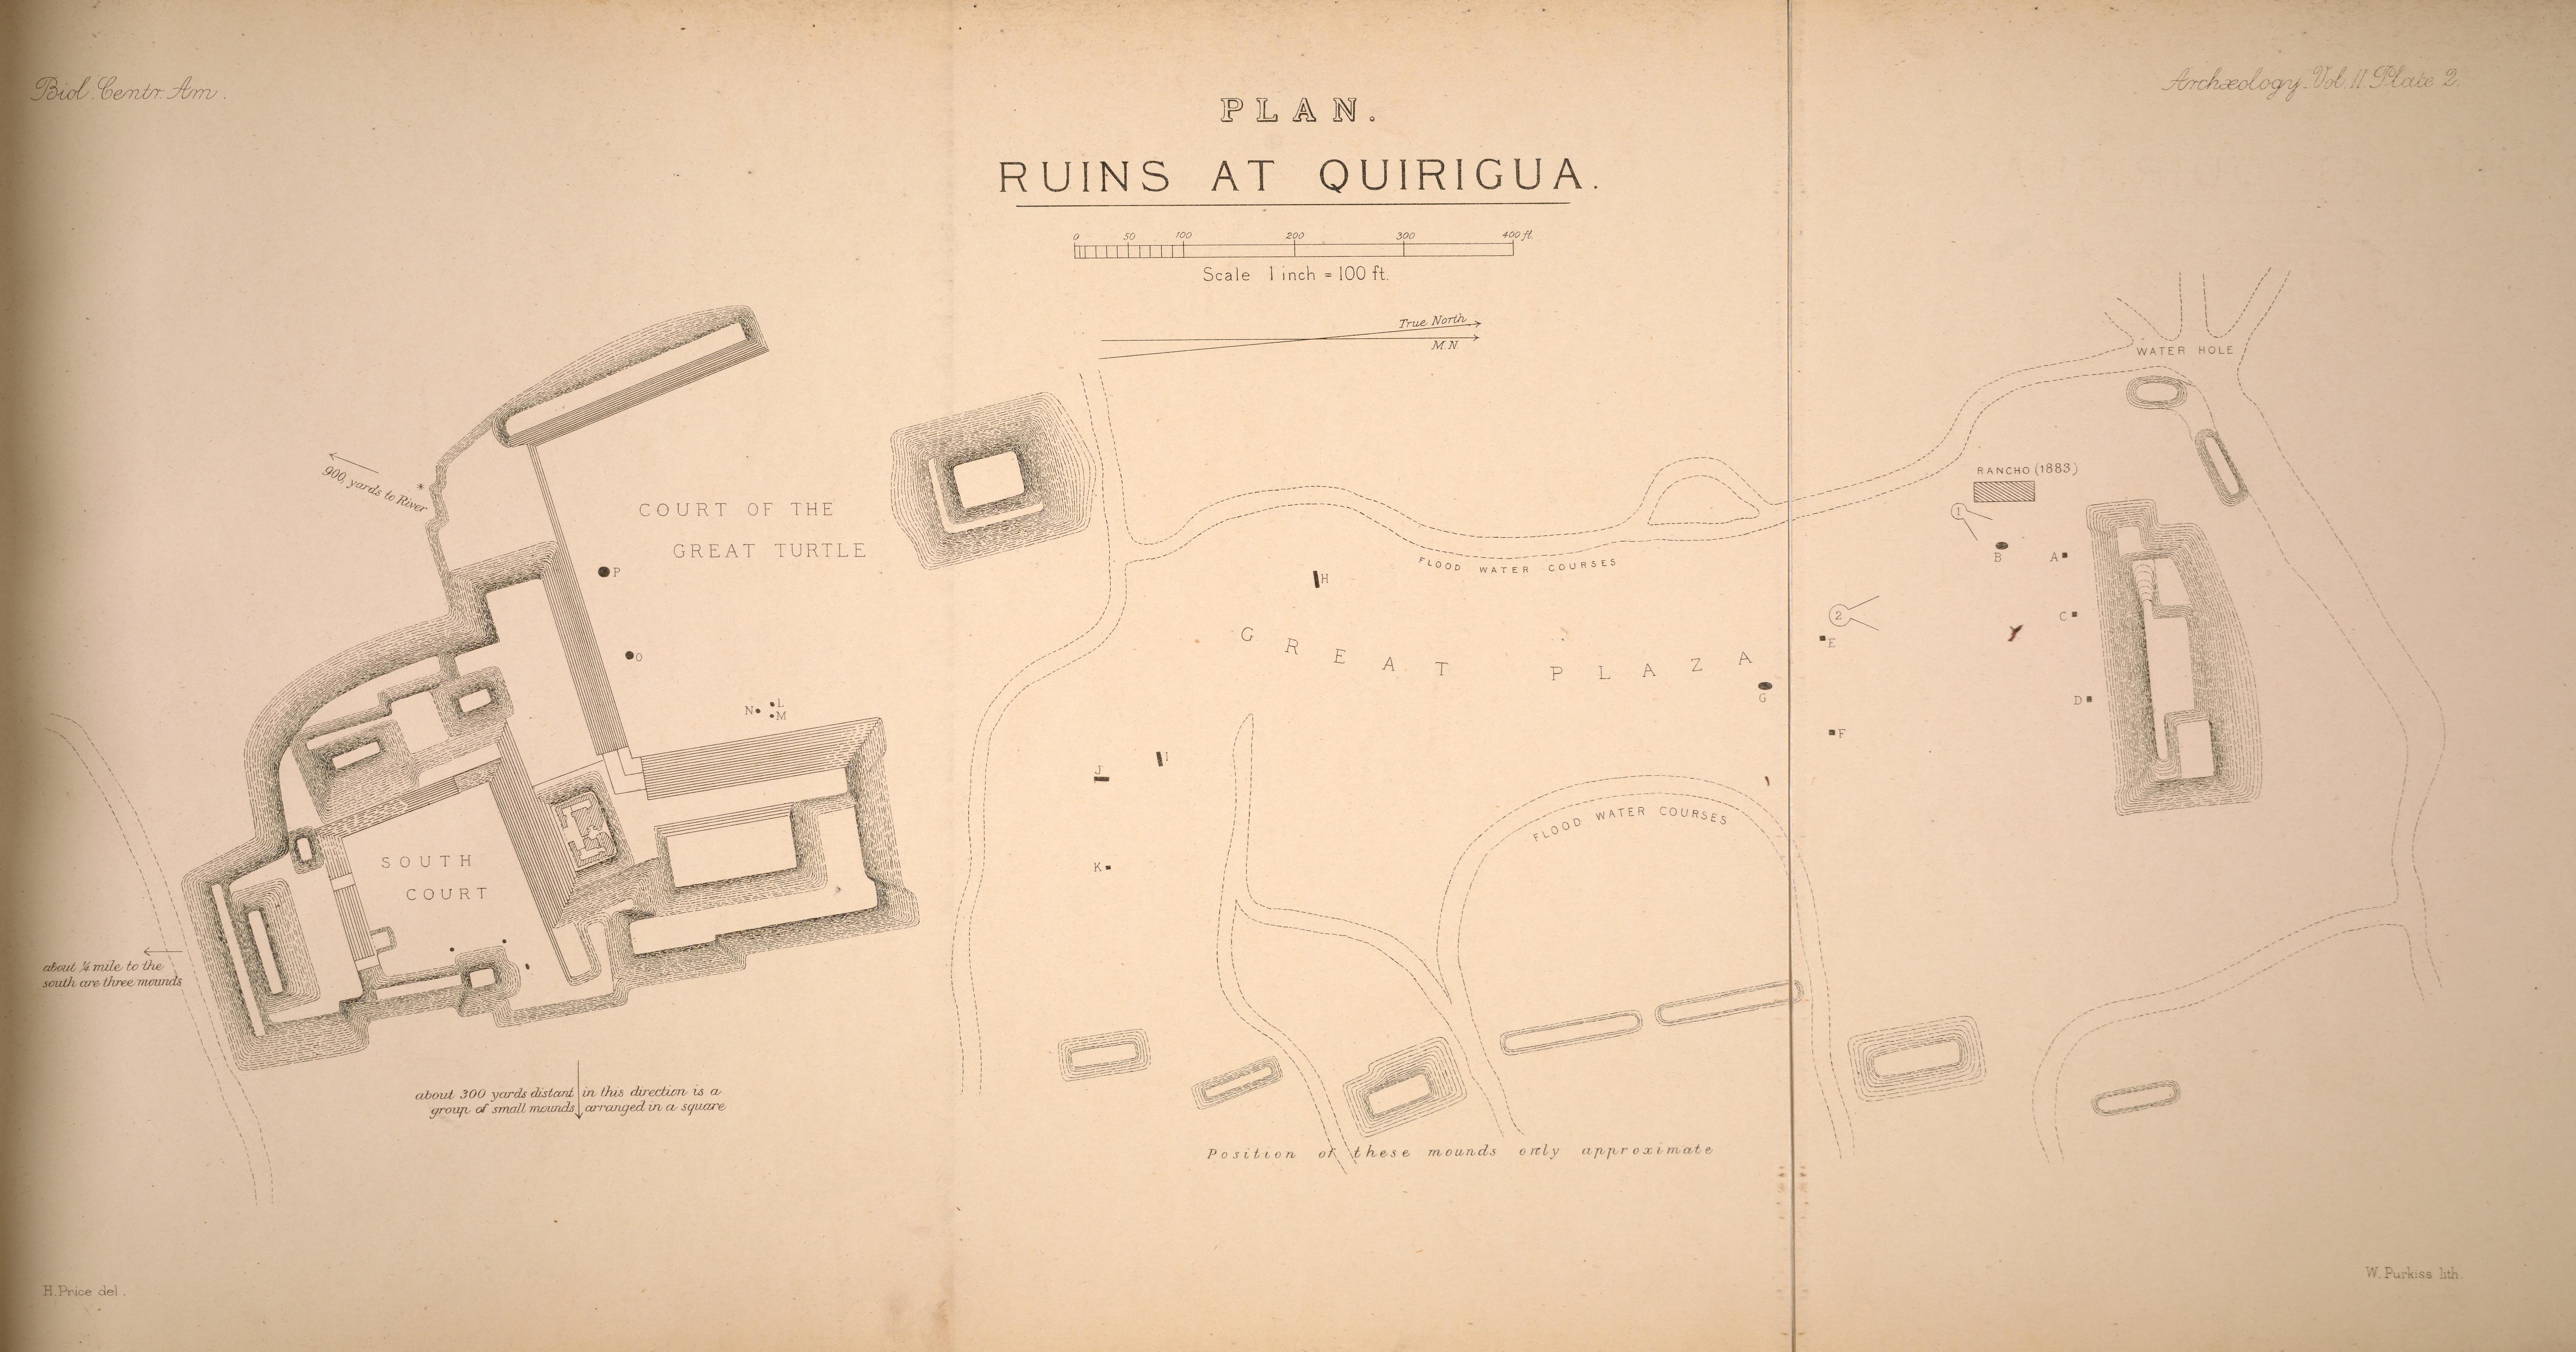 Maudslay's map of the ruins at Quiriguá, Guatemala